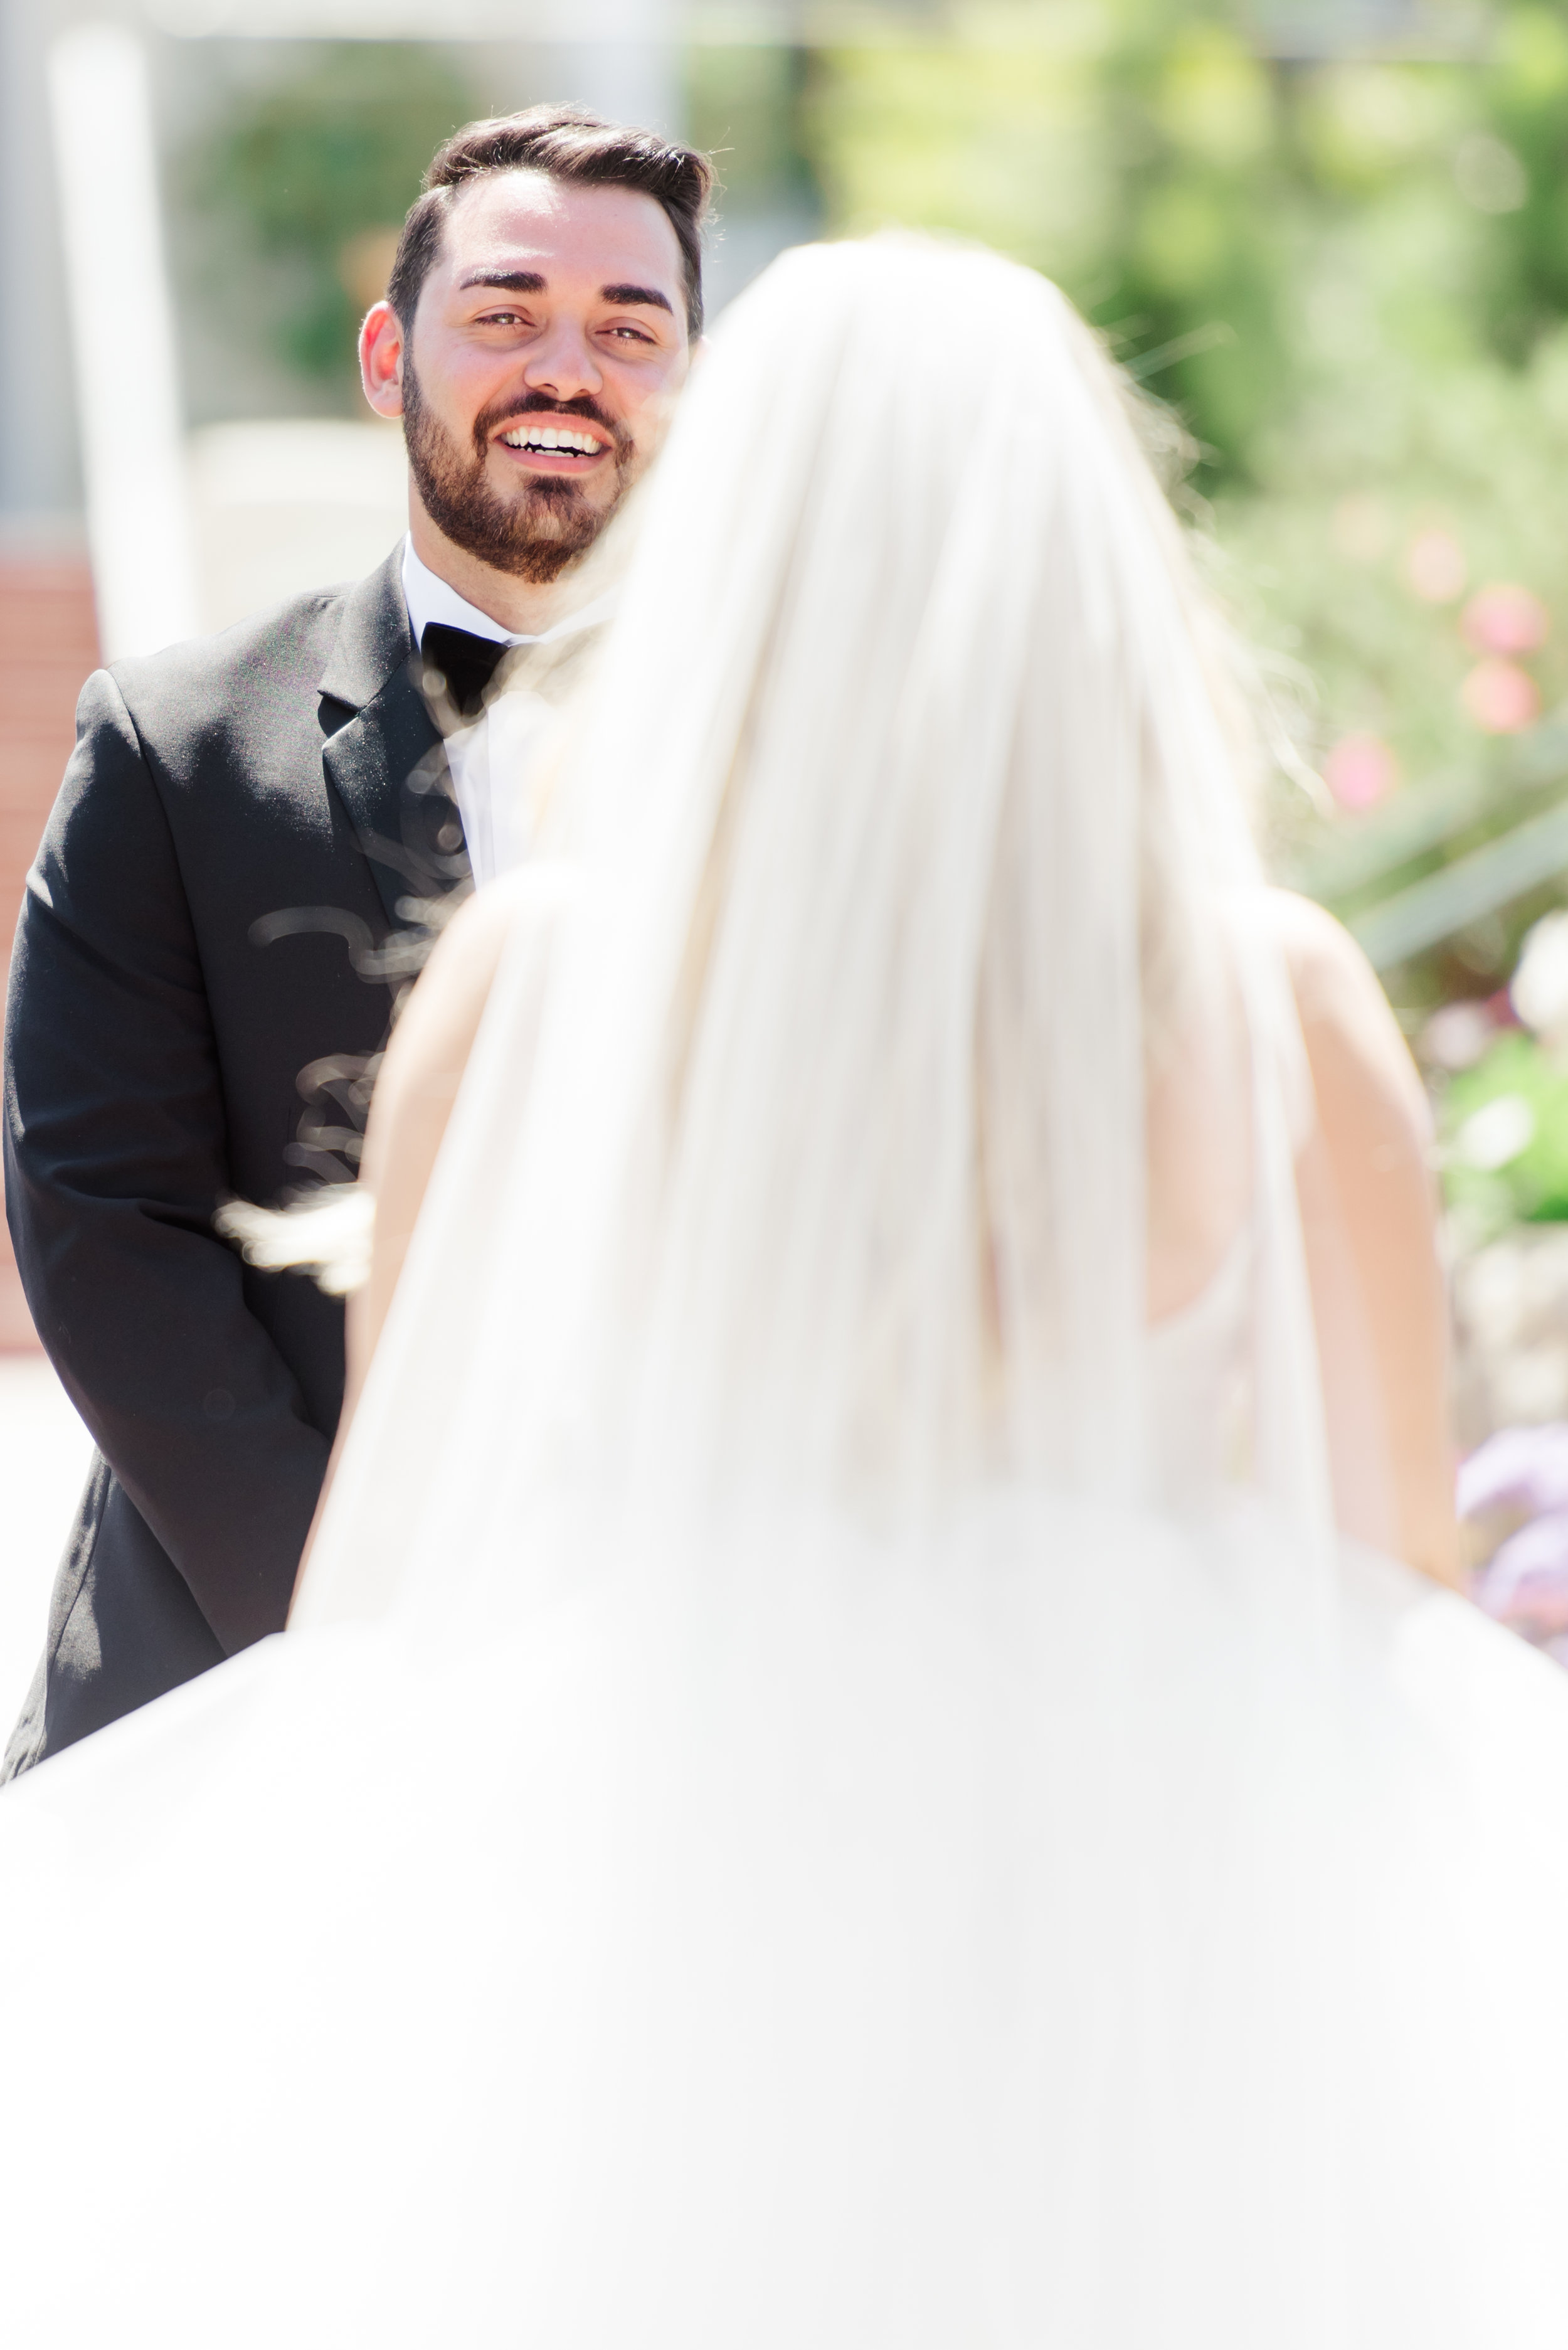 lauren-andrew-wedding-413.jpg